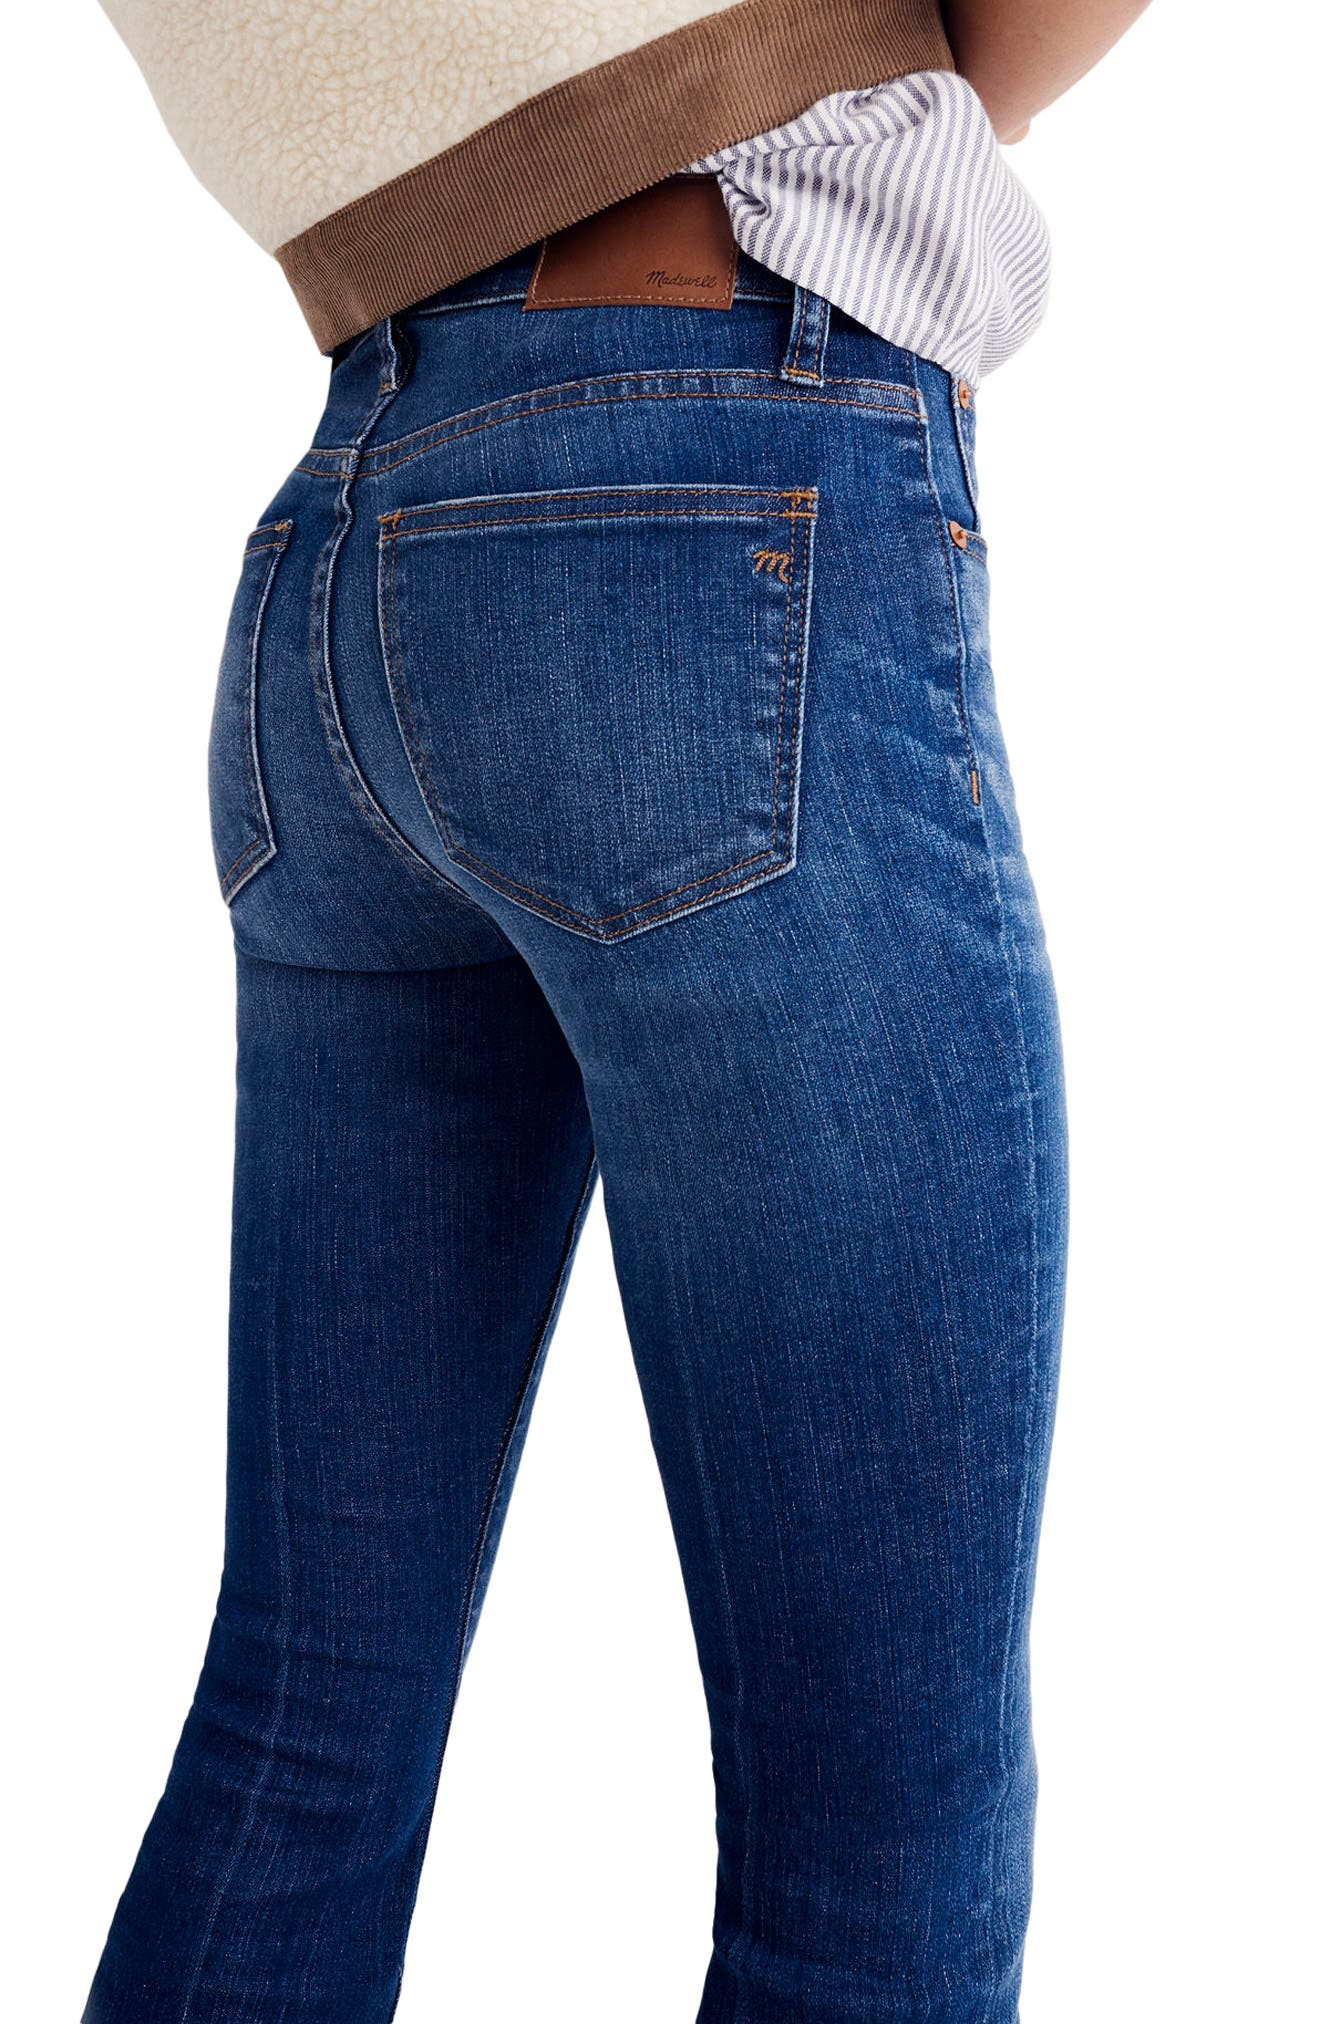 Cali Demi Boot Jeans,                             Alternate thumbnail 2, color,                             Wyoming Wash